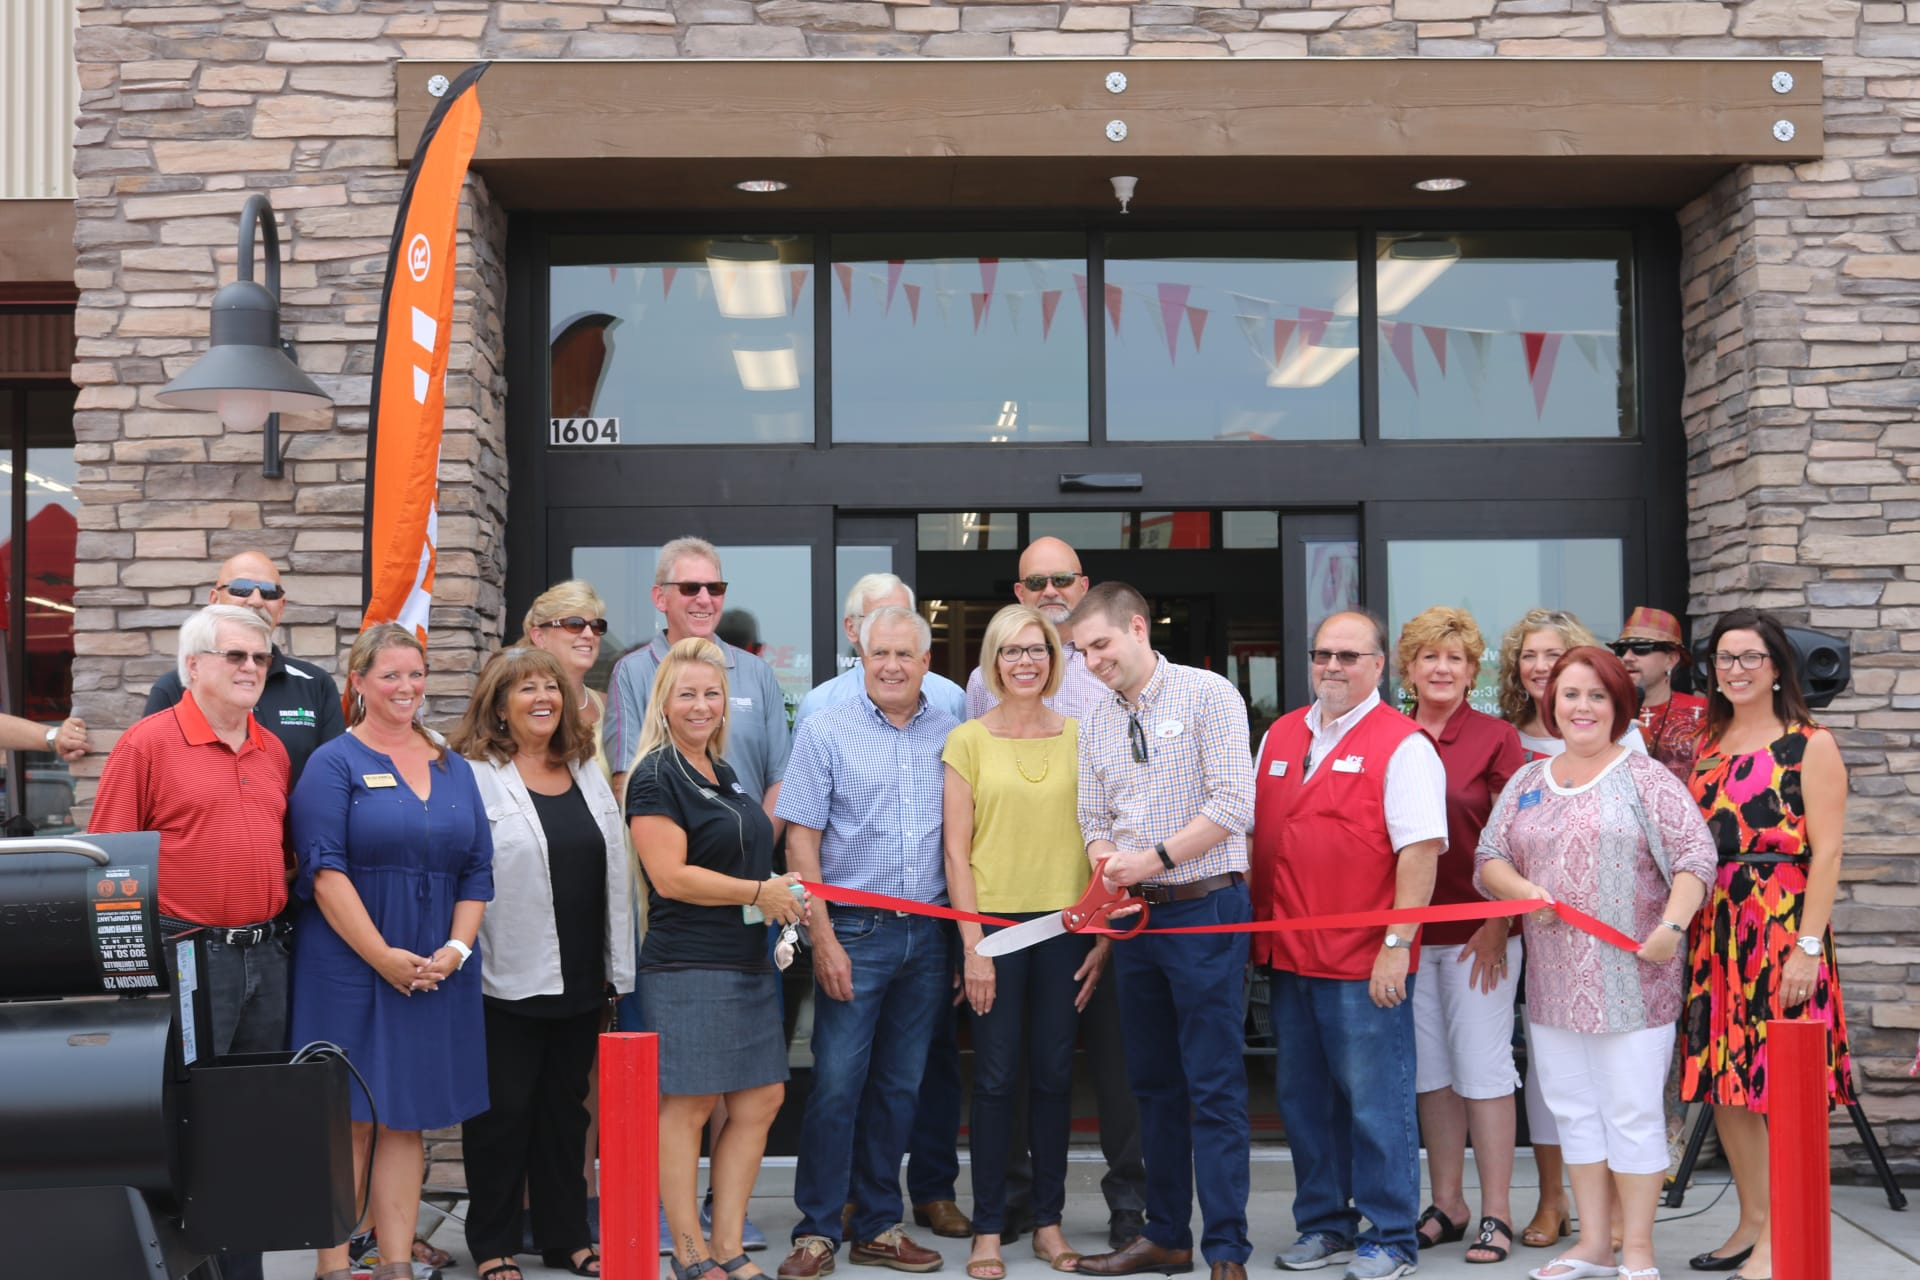 Seright's-Ace-Hardware-Ribbon-Cutting-2017-w1920.jpg